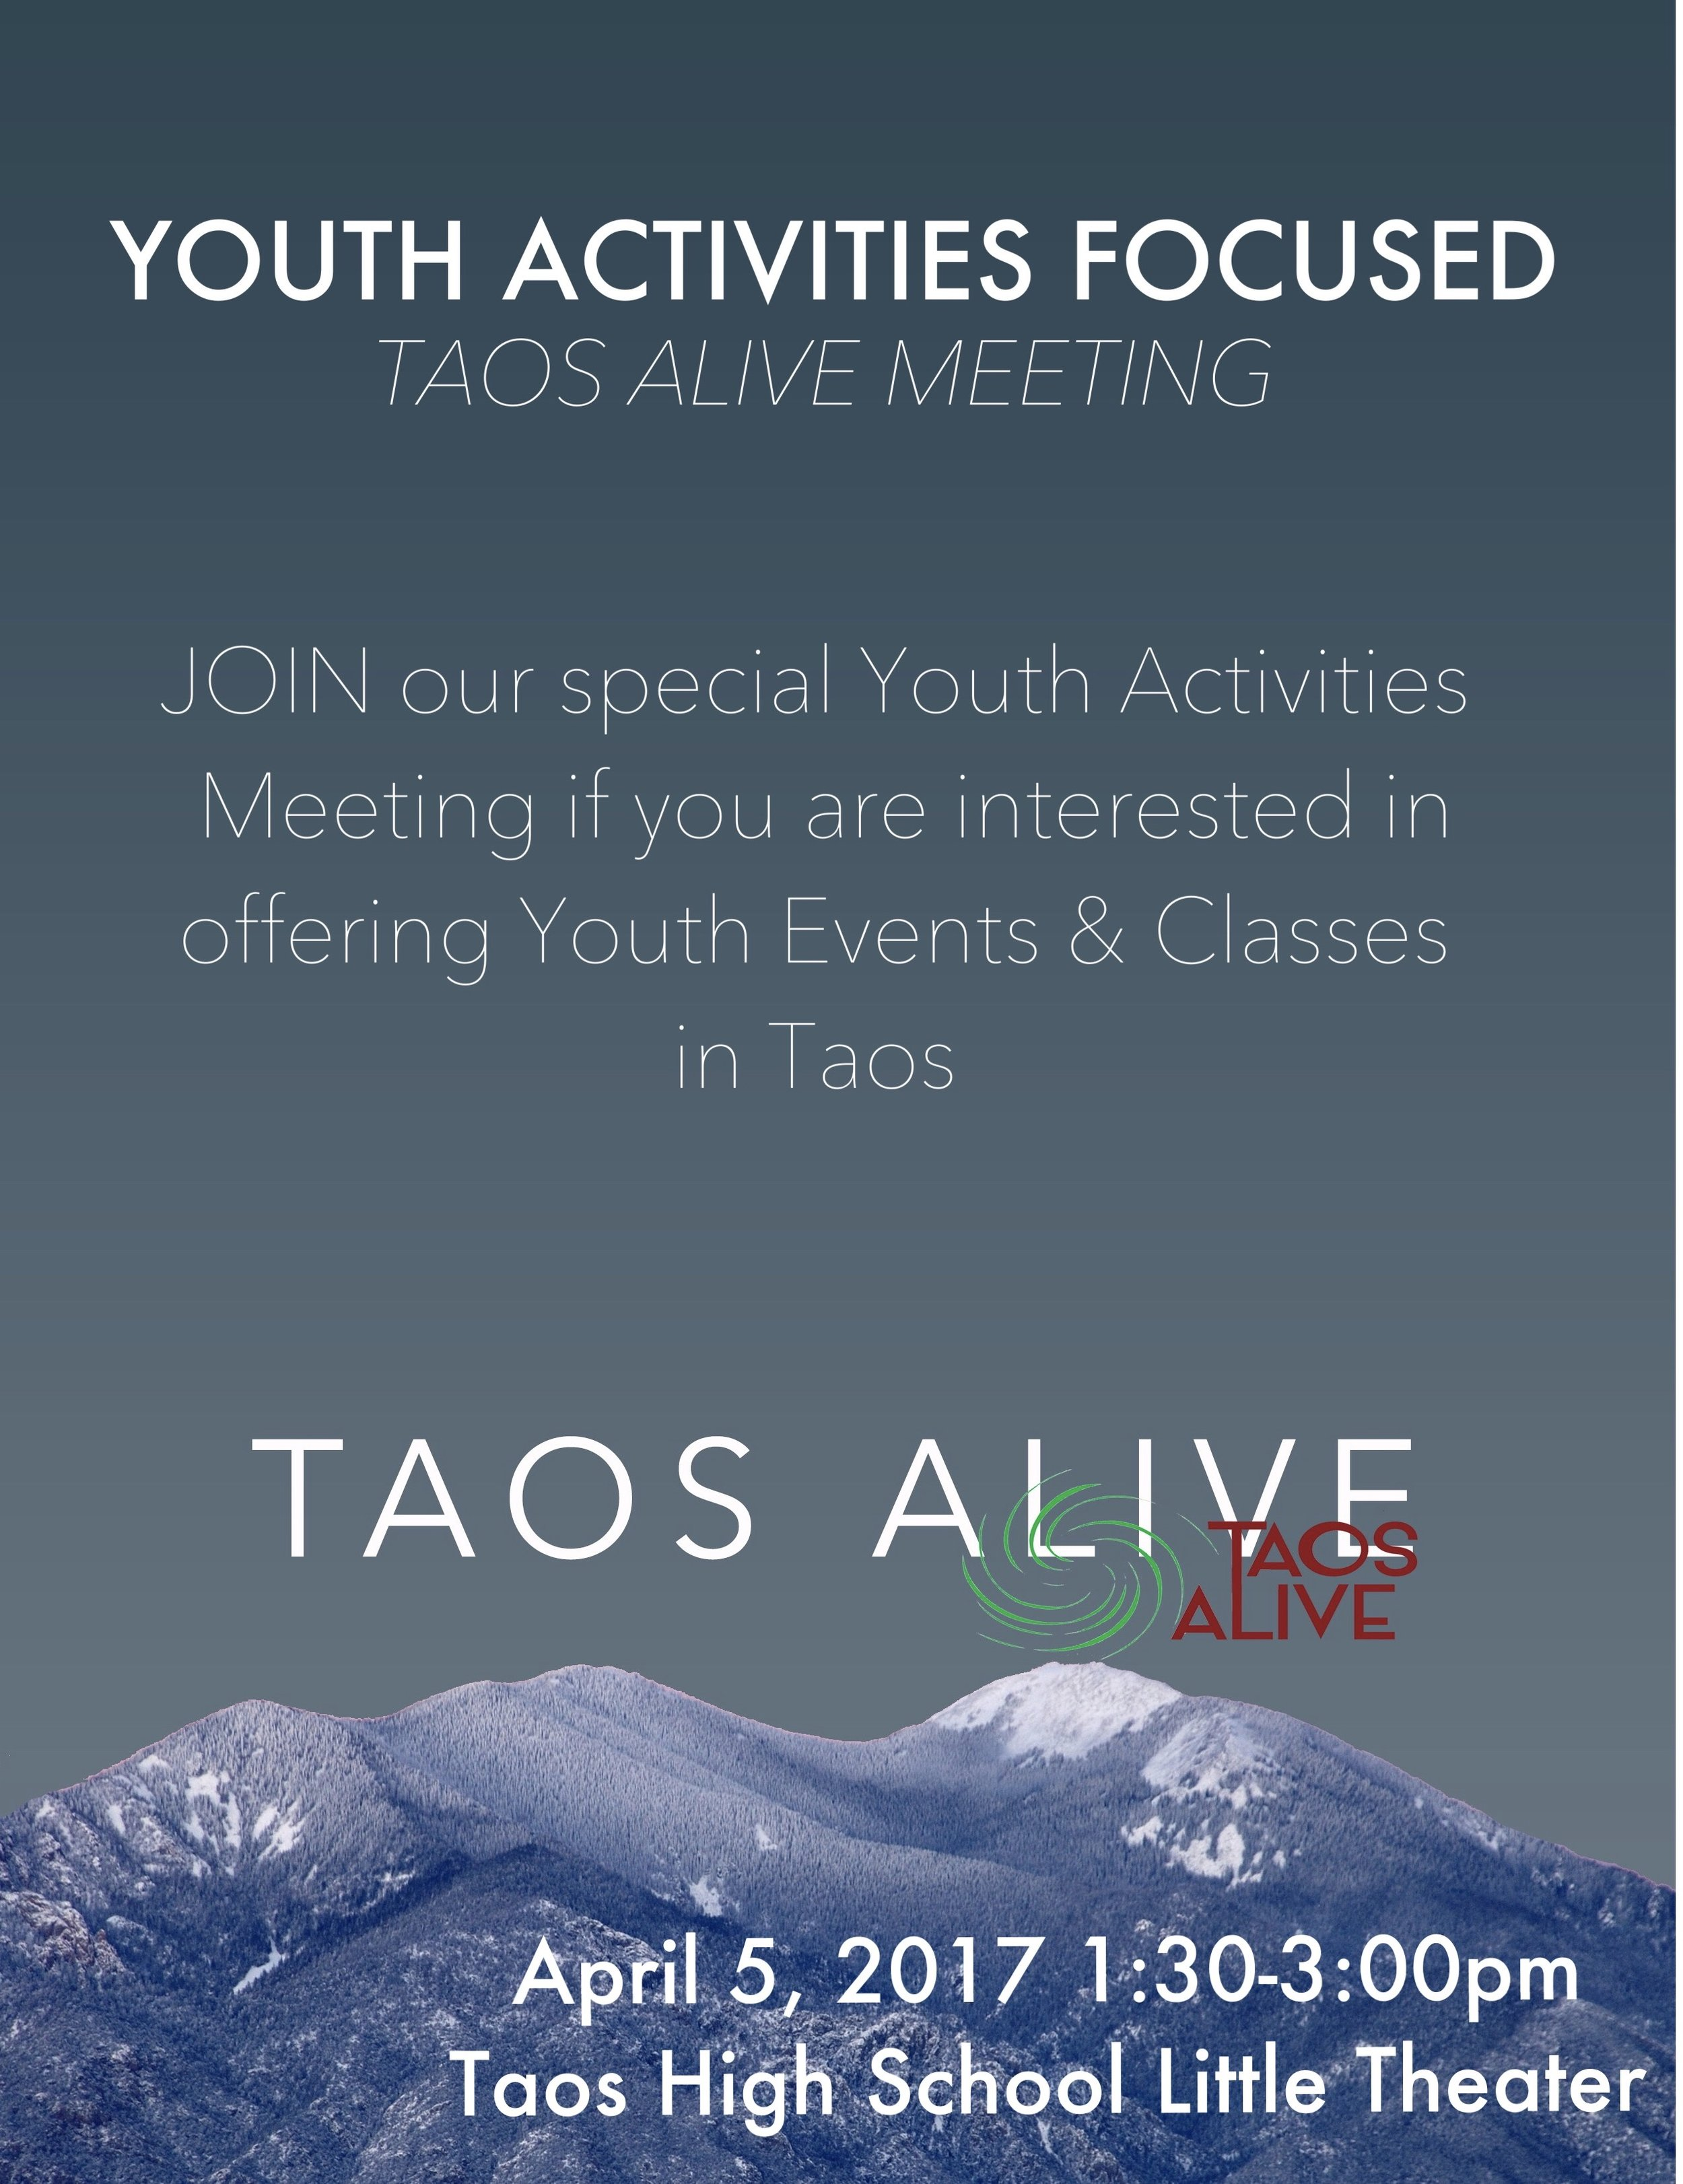 The next Taos Alive meeting will focus on youth activities in Taos.  This is a follow-up to last year's Town Hall meeting, our strategic planning and to assist the start-up of the new youth activities newsletter and the new youth coalition.   Anyone interested in providing drug-free youth activities are already providing youth activities, promoting youth activities, are a youth interested in more youth activities should attend.  Our goals are not to create more activities but a venue/system to bring together people/organizations l who already are providing activities and those who want to with space, promotion, and youth.     When: April 5, 2017 1:30P-3:00PM  Where: Taos High School Little Theater